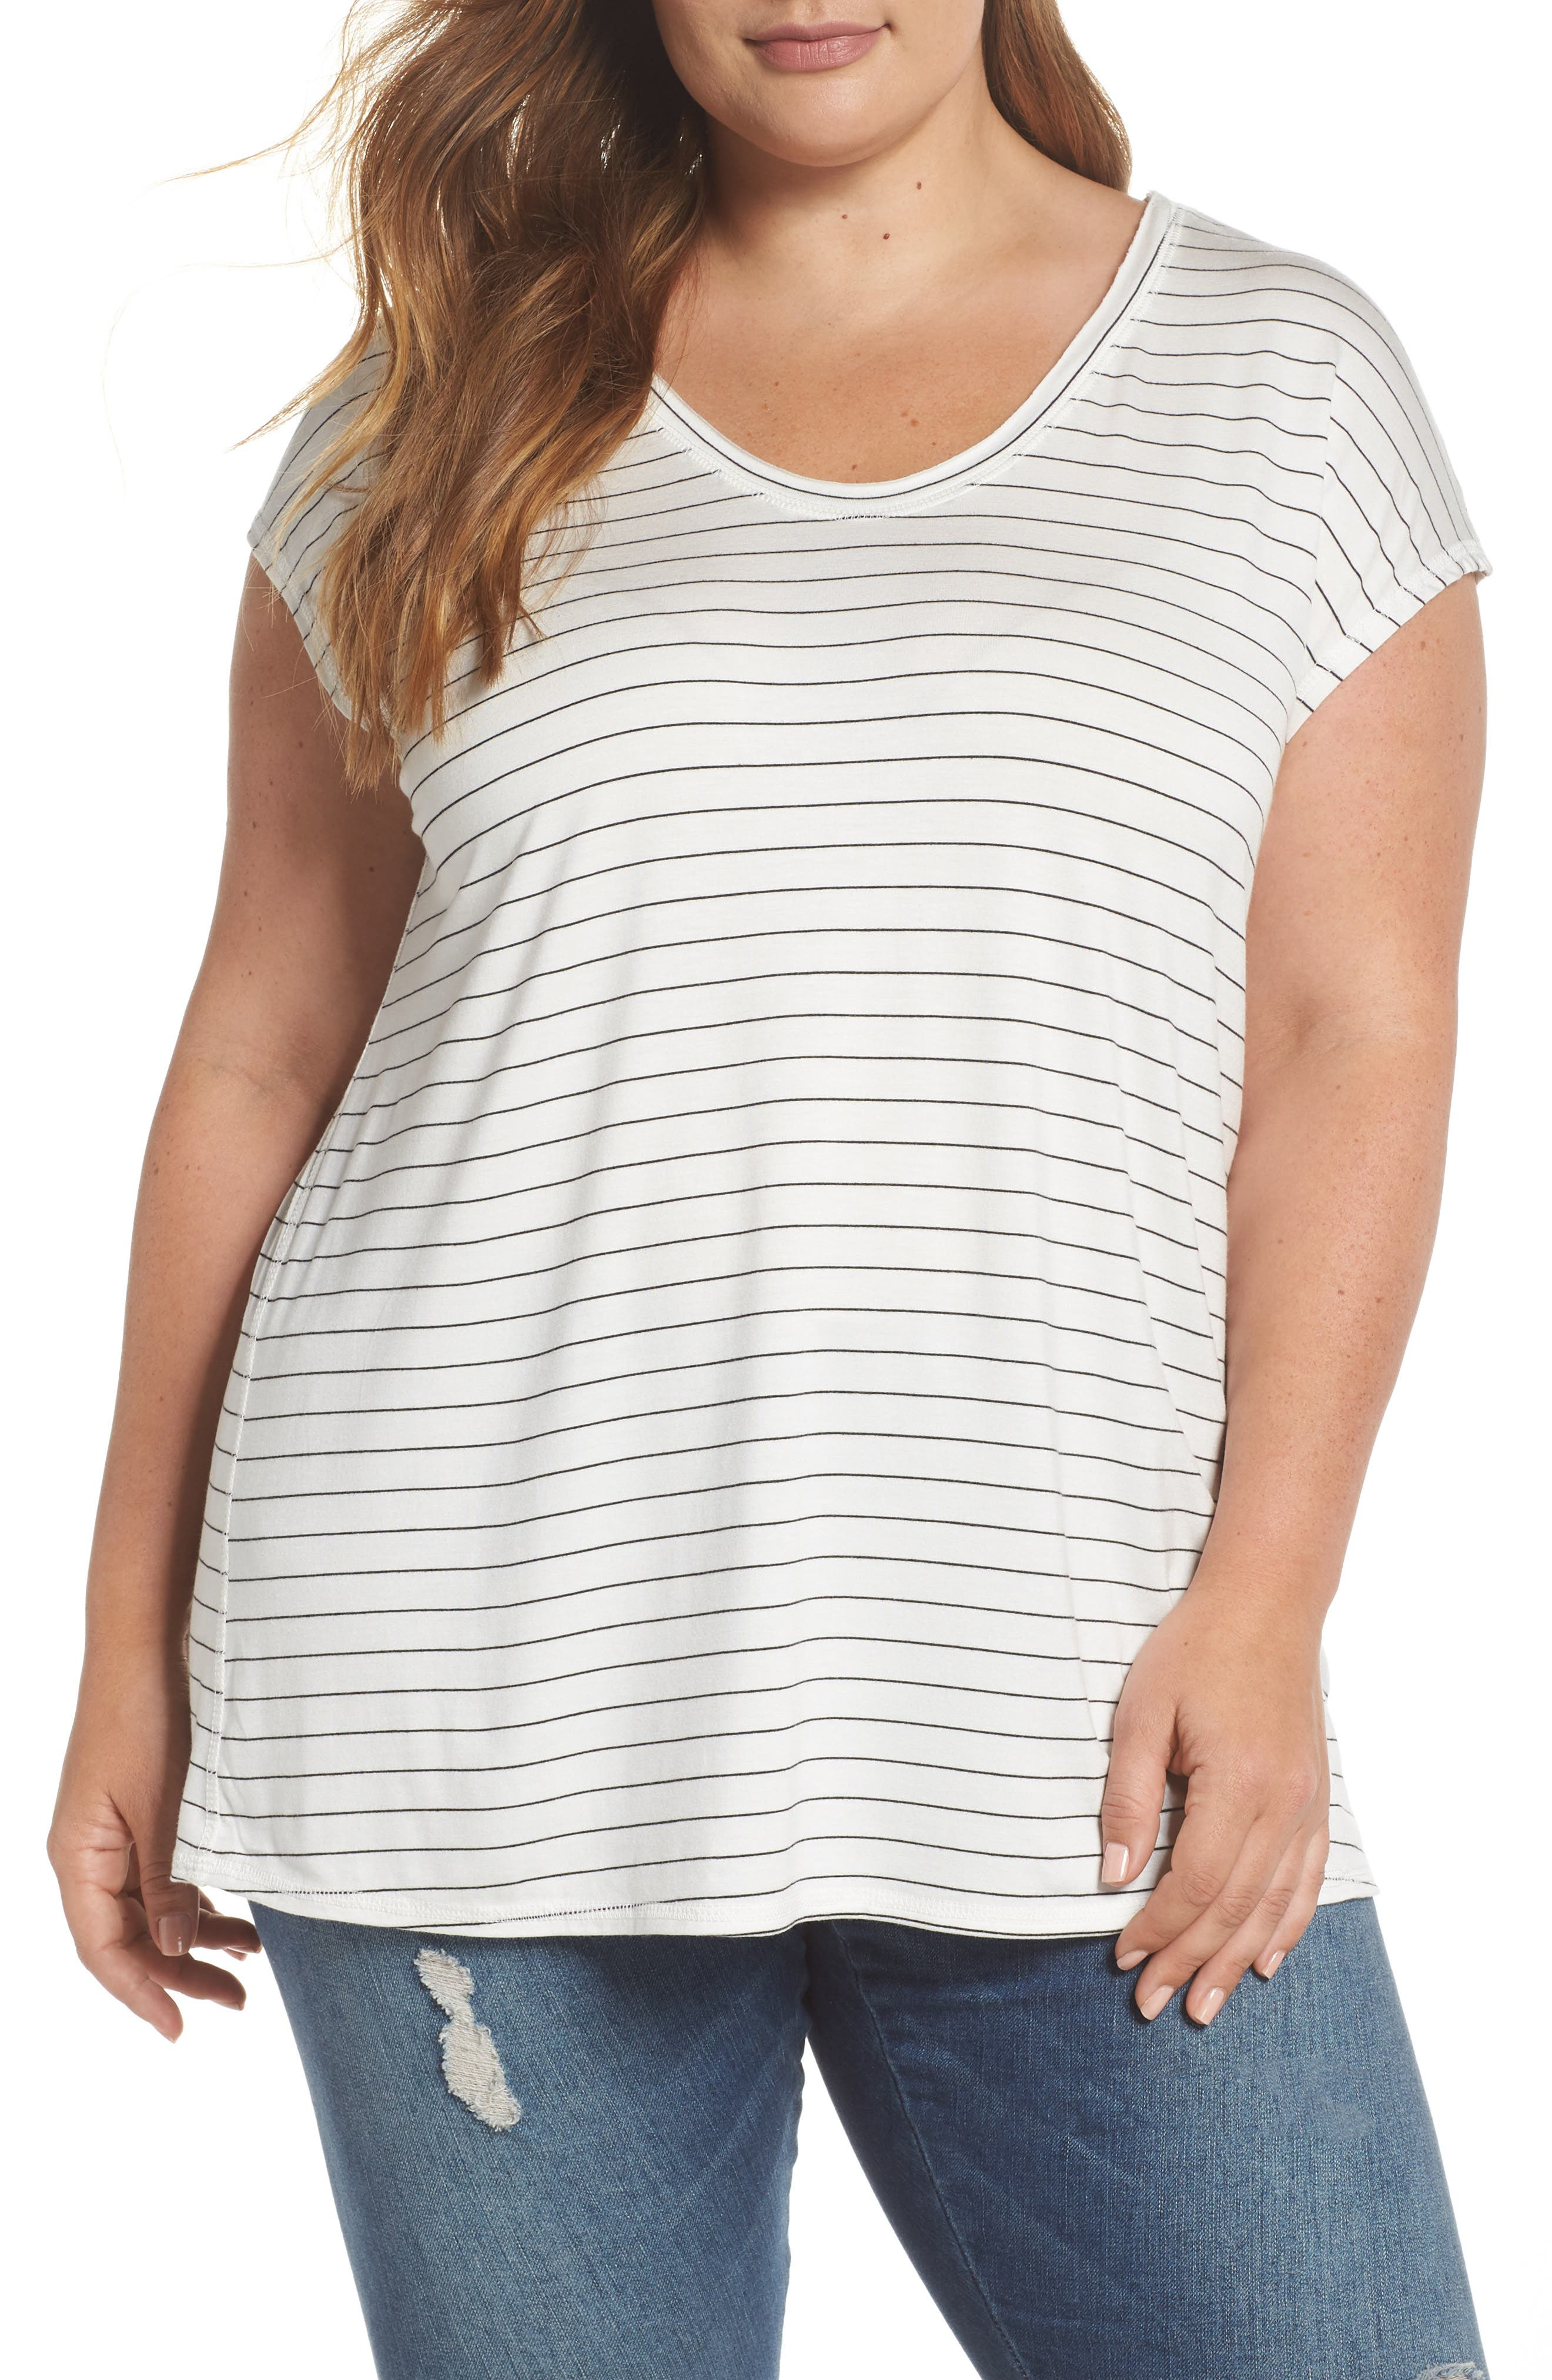 Off-Duty Stretch Knit Top,                             Main thumbnail 1, color,                             001